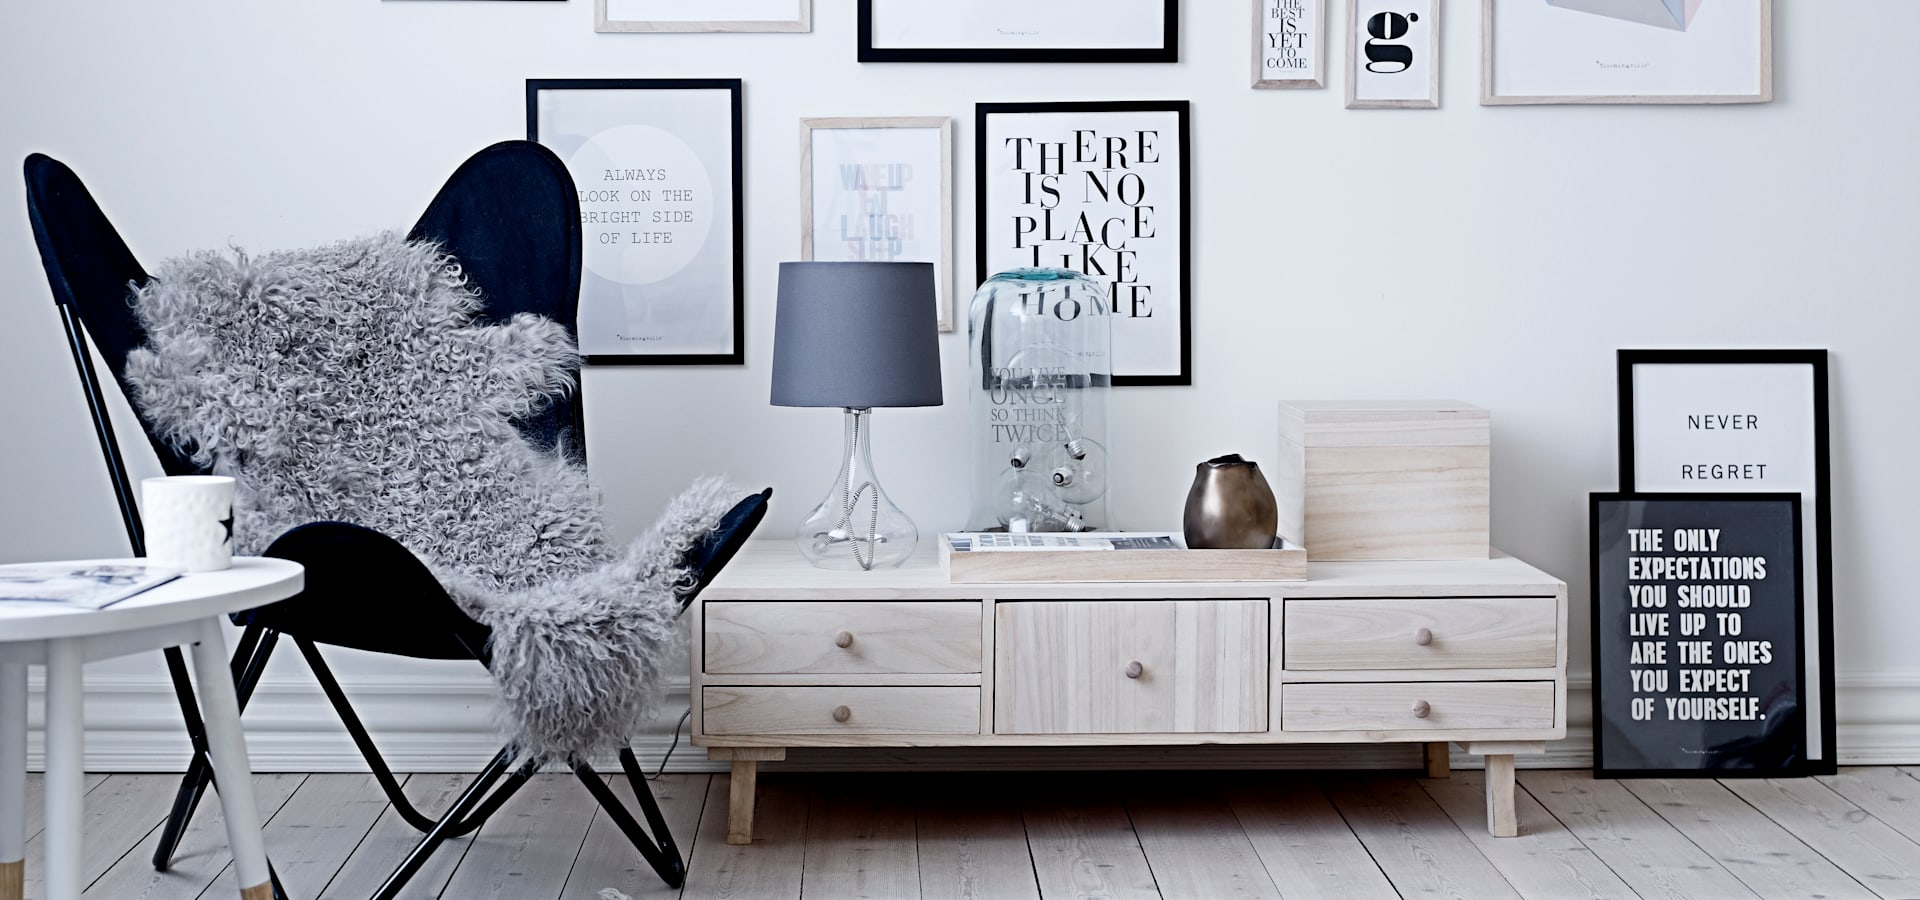 house envy mobili accessori a llantwit major homify. Black Bedroom Furniture Sets. Home Design Ideas